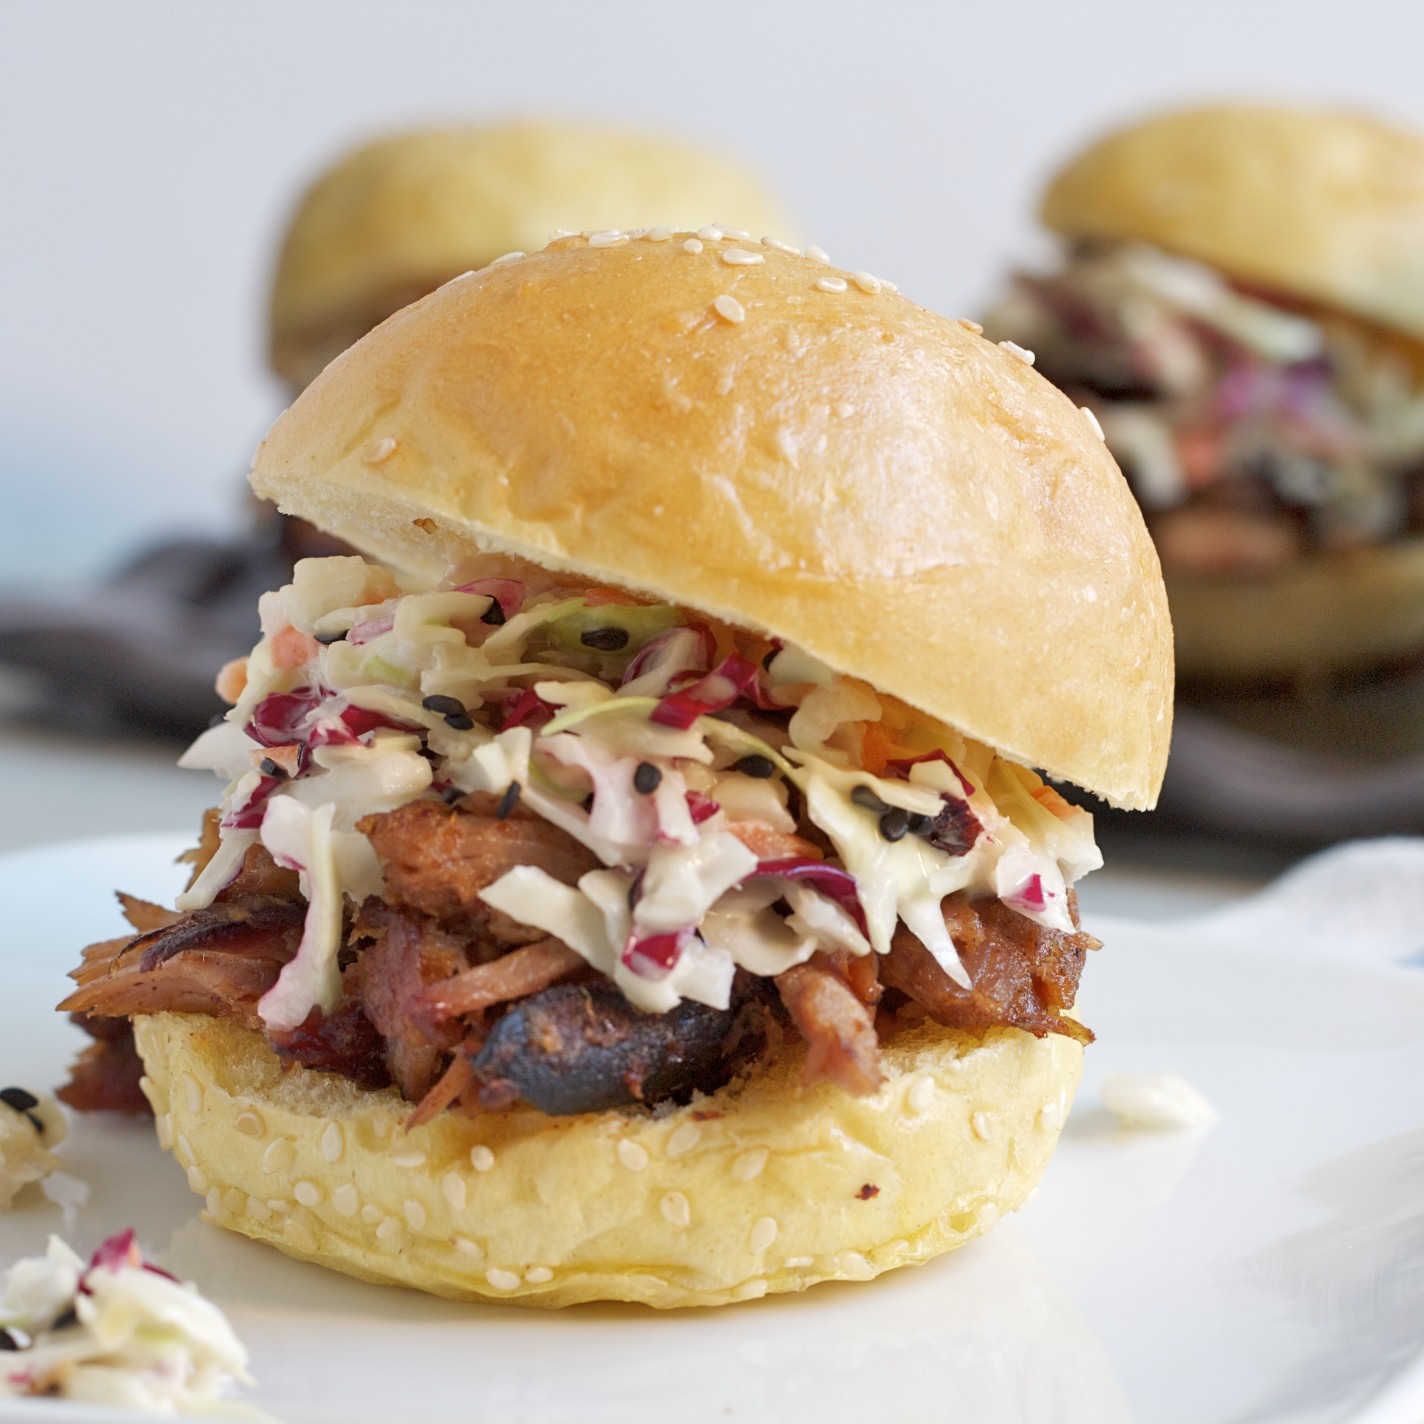 Dude Food: Star-Anise Spiced Pulled Pork